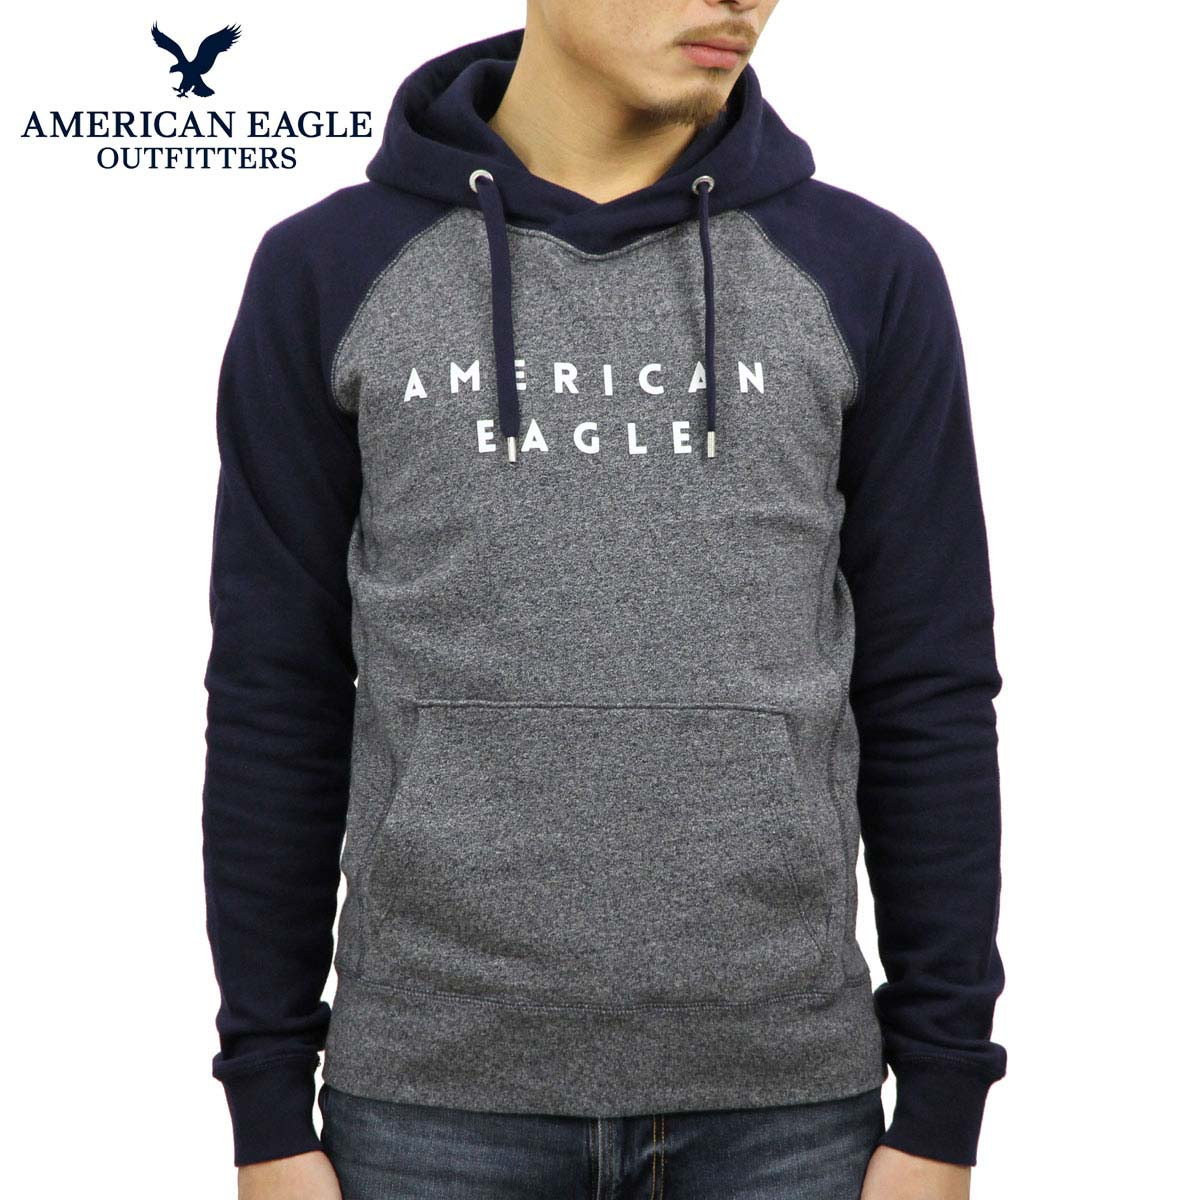 79bce19411f American eagle AMERICAN EAGLE regular article men pullover parka AE FLEECE  GRAPHIC HOODIE 0193-9775-410